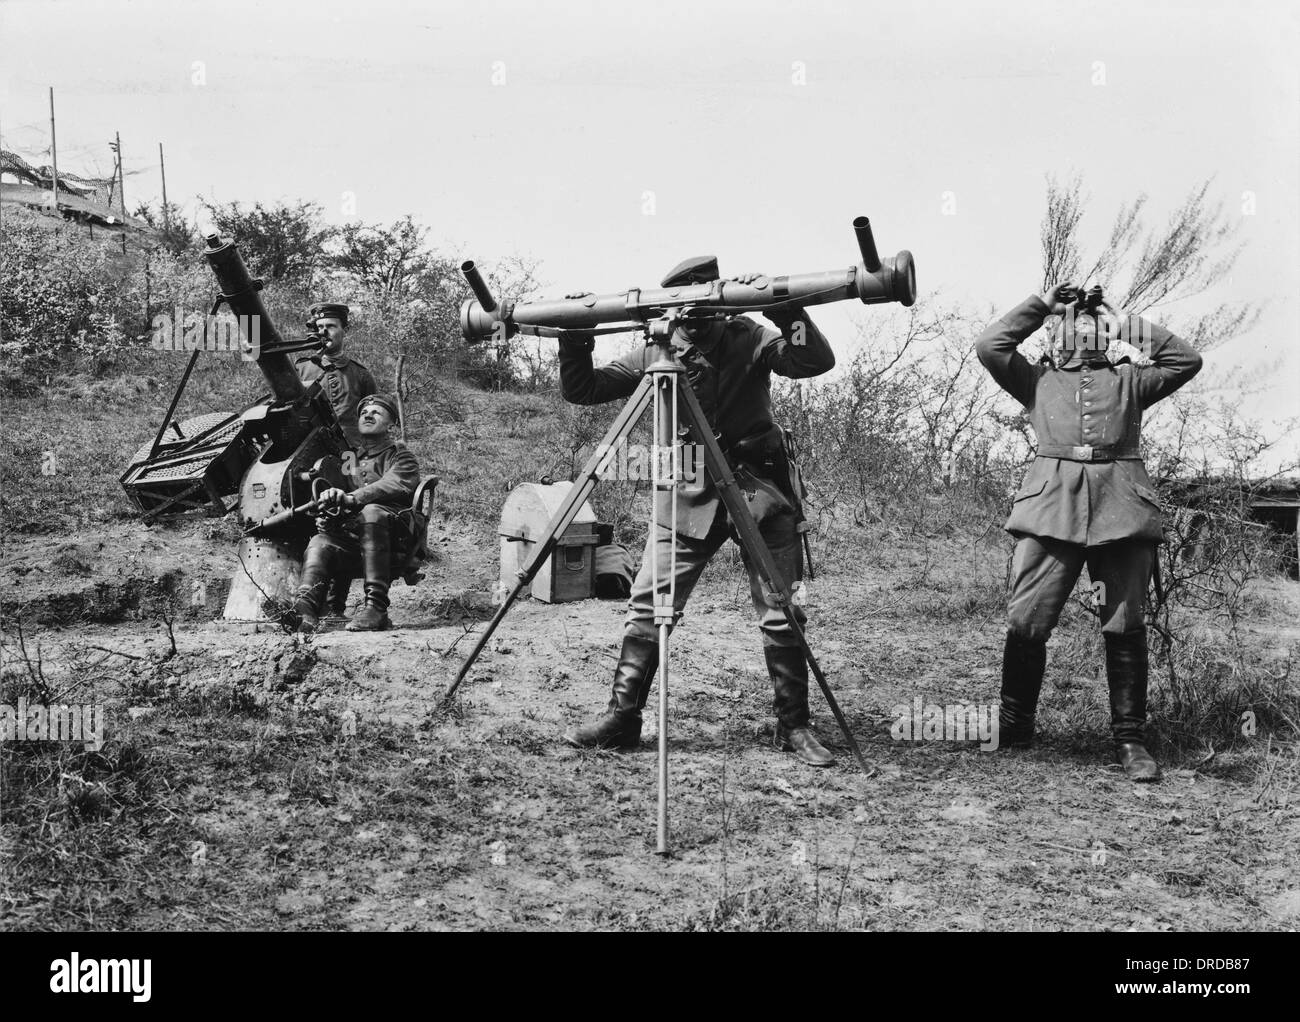 German flag gun WWI - Stock Image